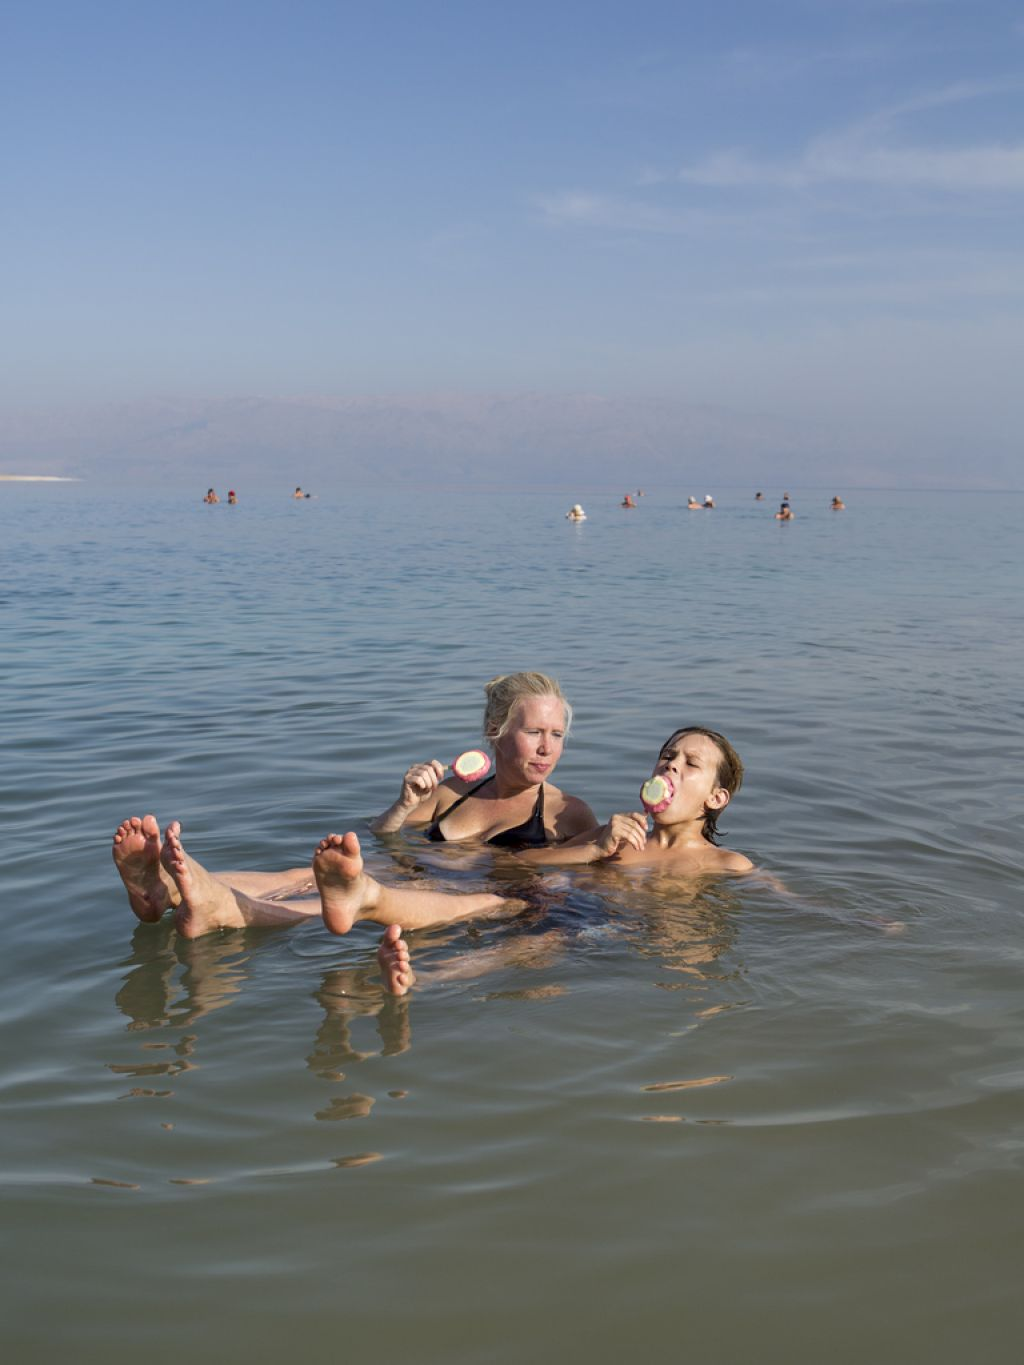 dead sea7 Floating on the Dead Sea by Itamar Grinberg